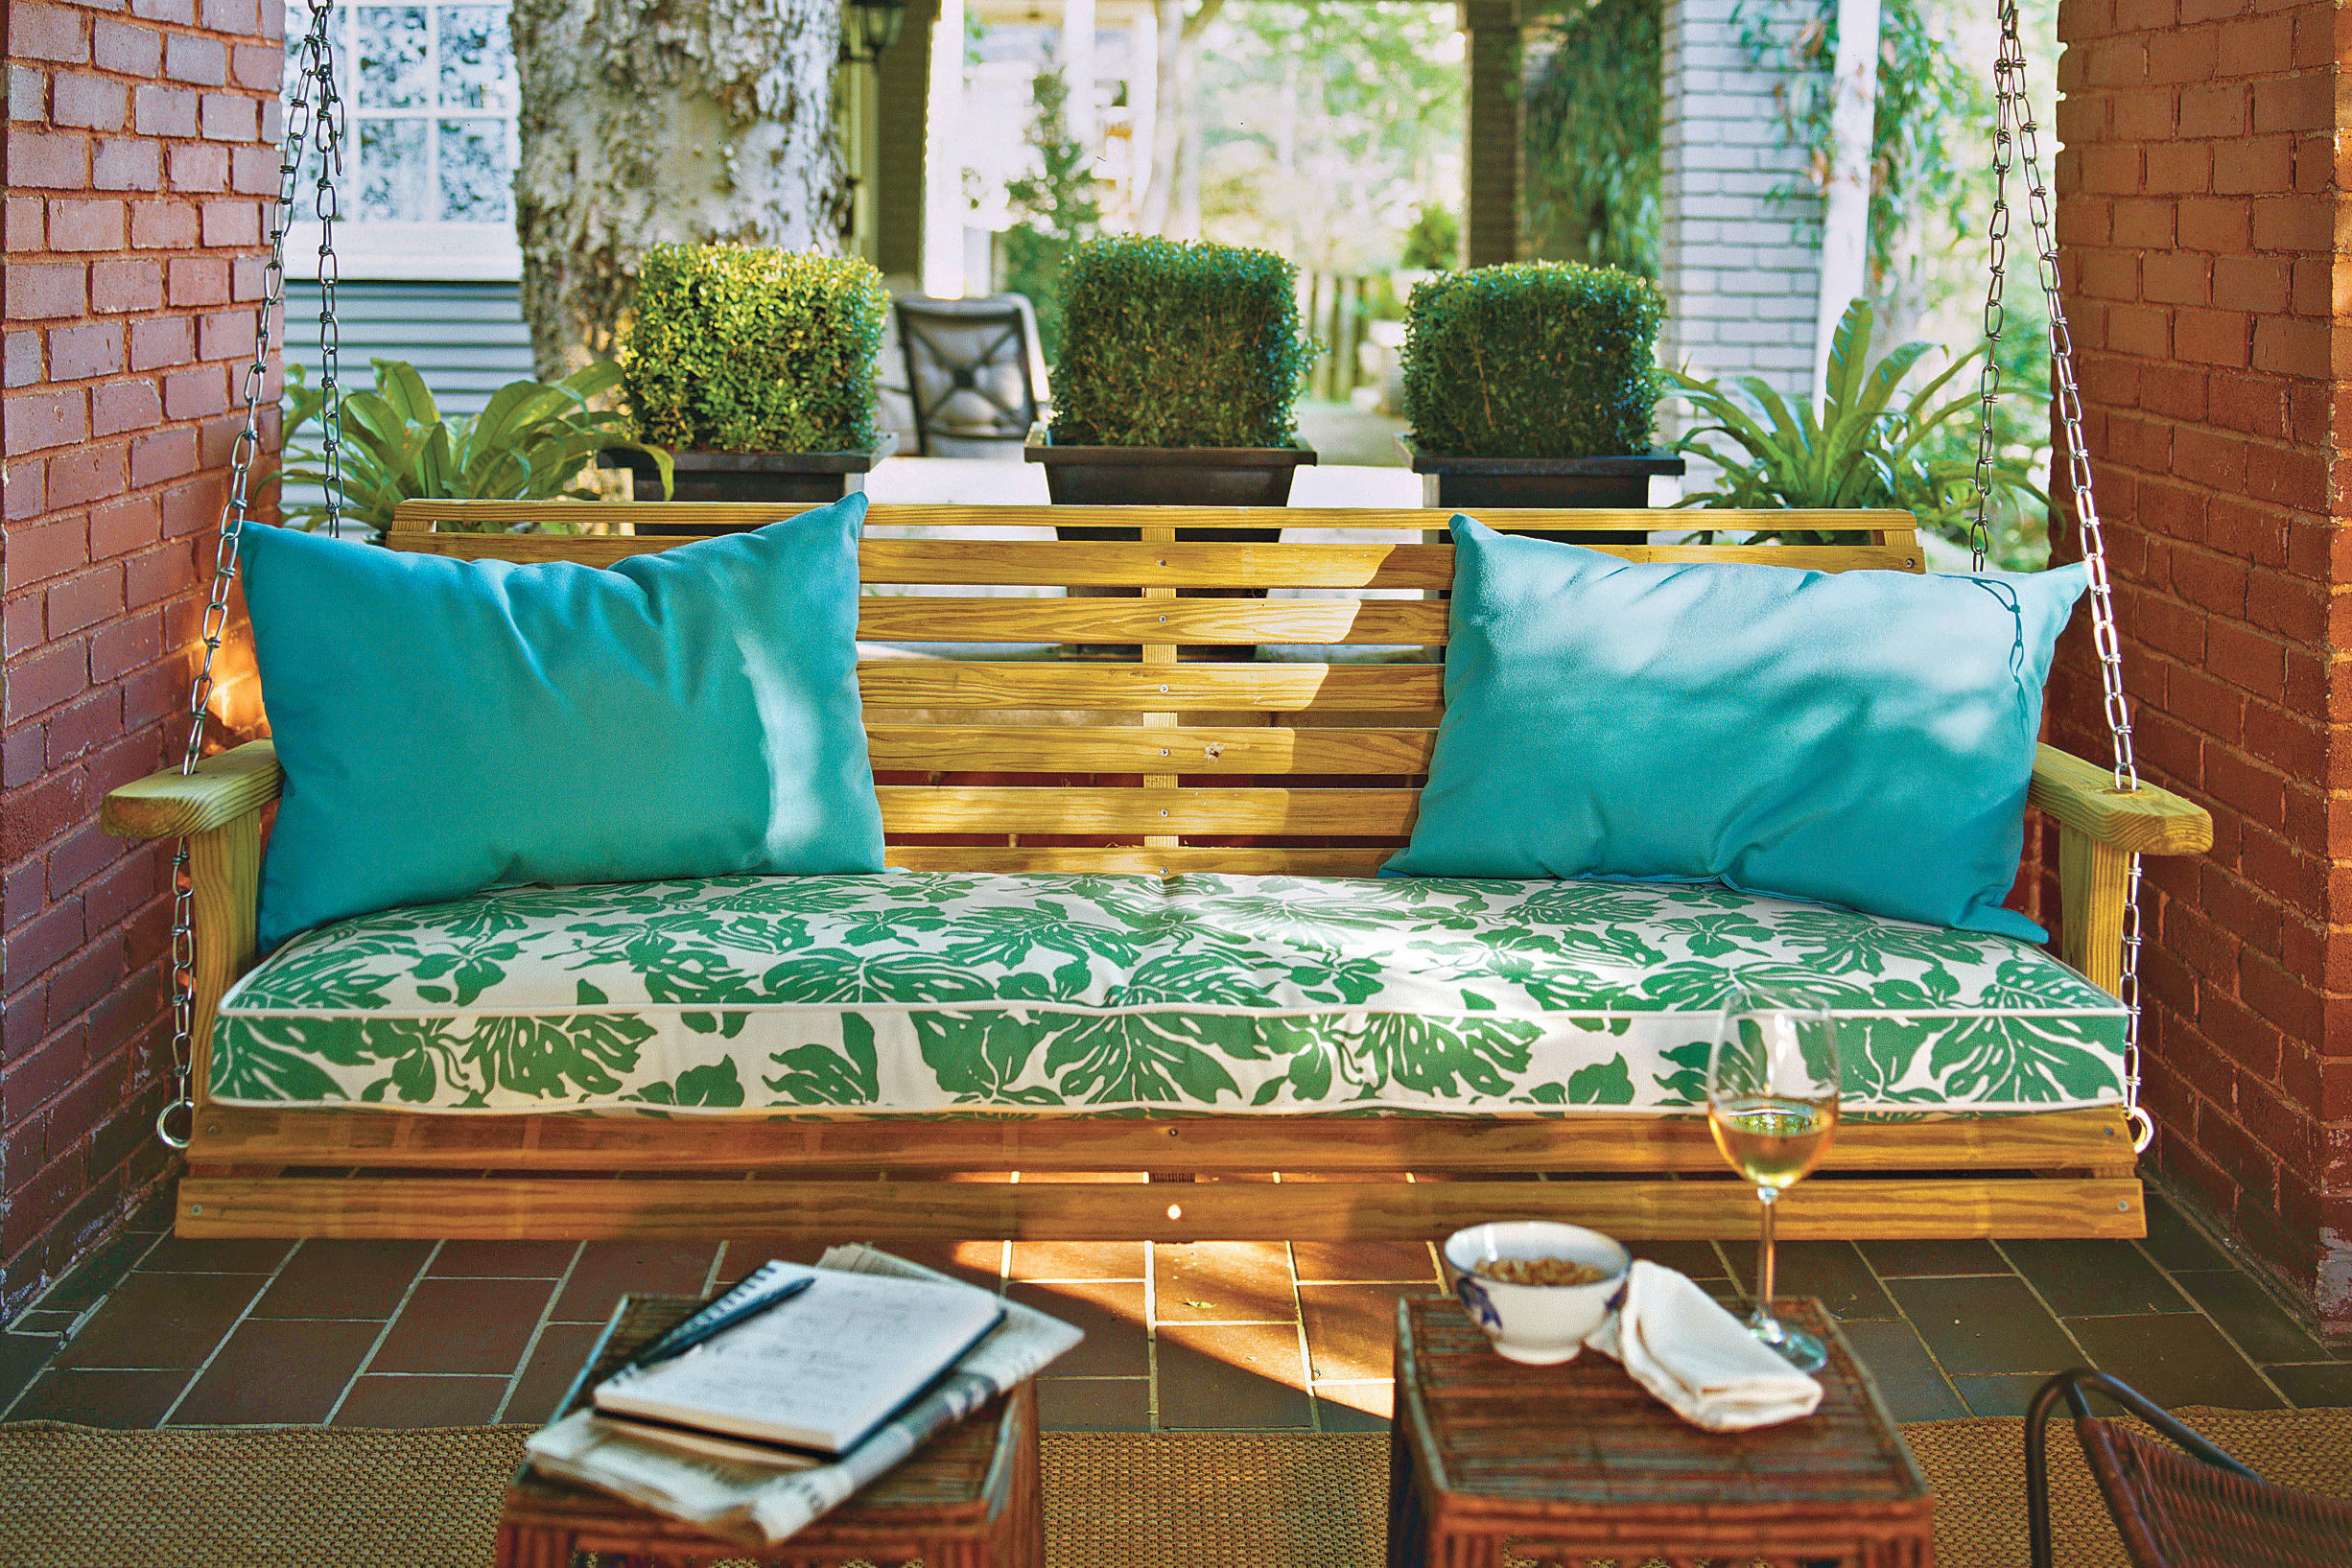 Set Up a Porch Swing: Perfect for Socializing